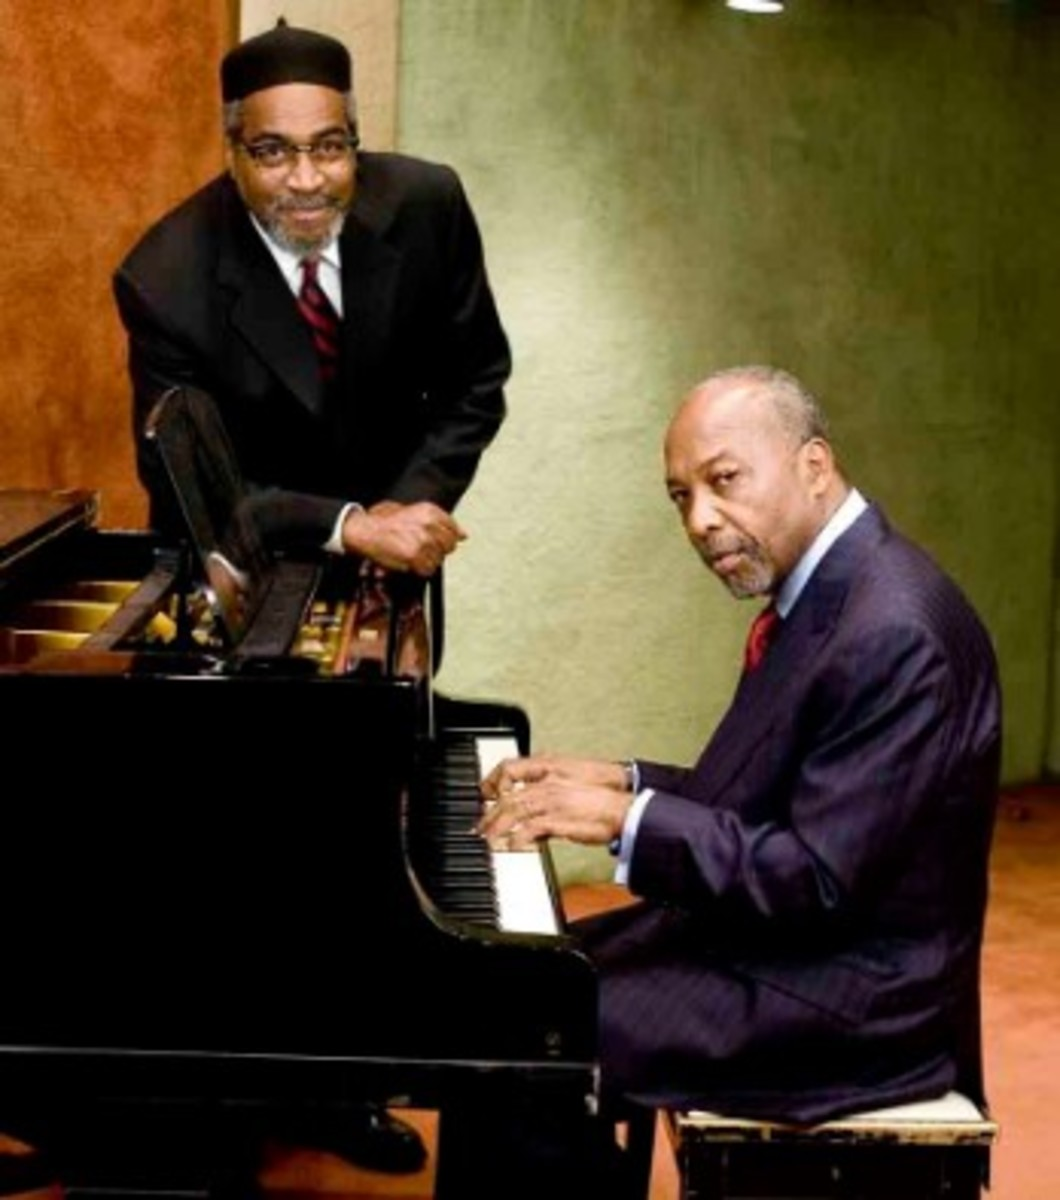 L to R: Kenneth Gamble and Leon Huff, courtesy of Gamble Huff Entertainment